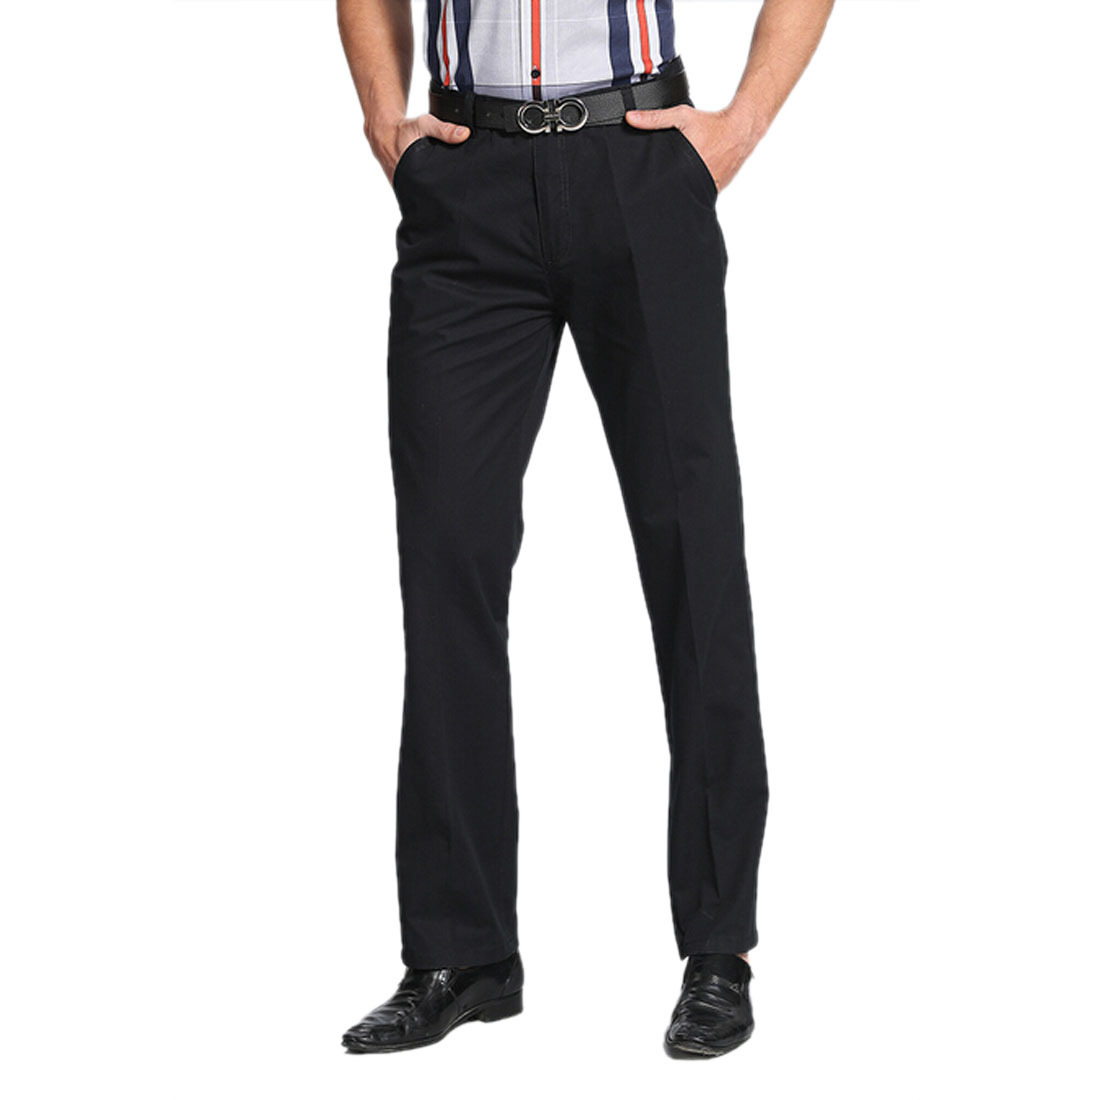 Fashion Cotton Mens Straight Slim Trousers Slacks Formal Business Long Pants | EBay